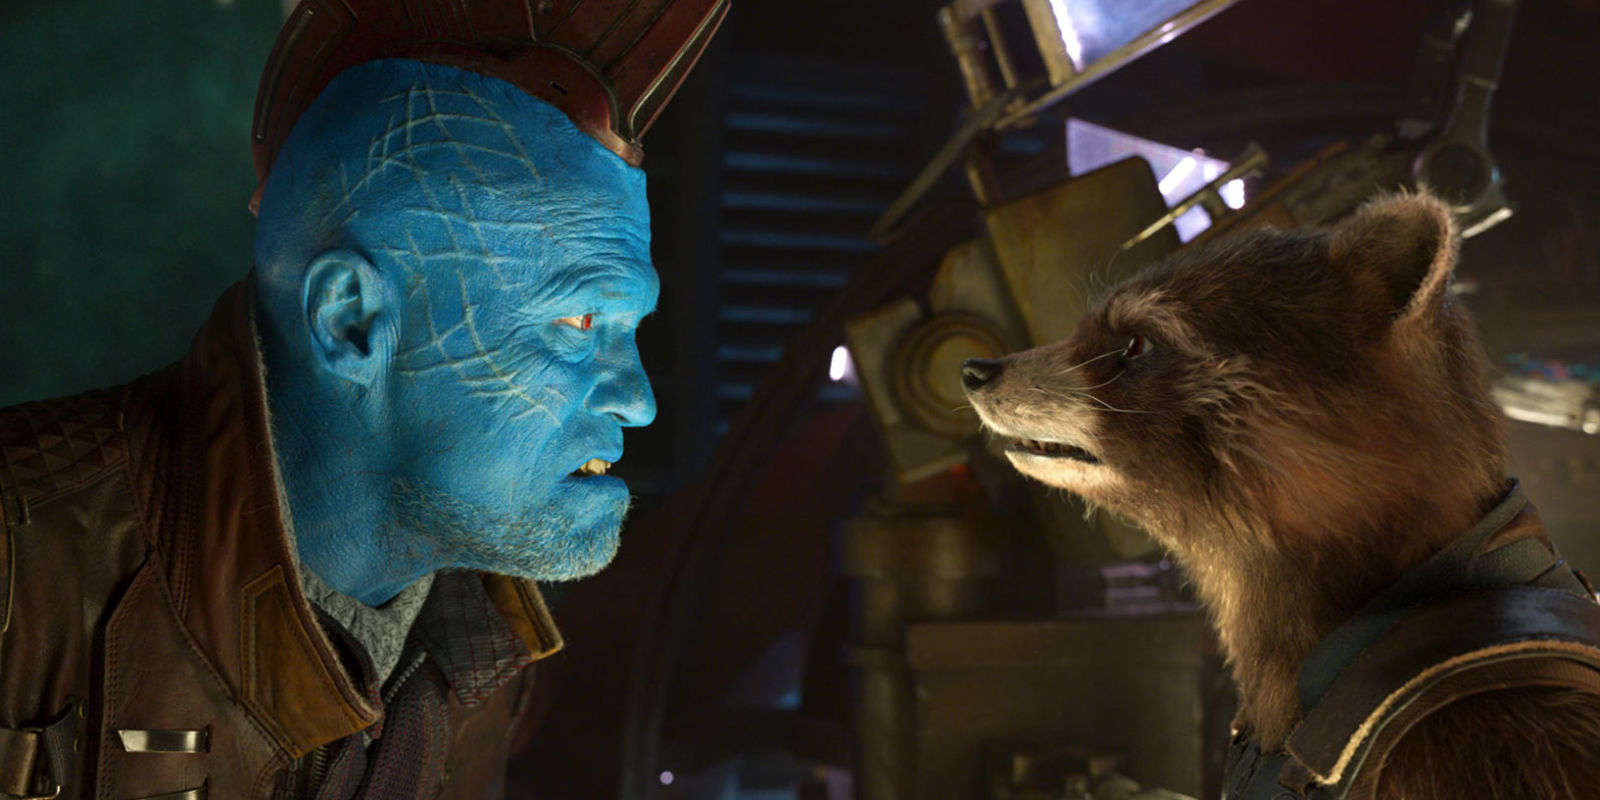 Michael Rooker as Yondu in Guardians of the Galaxy 2